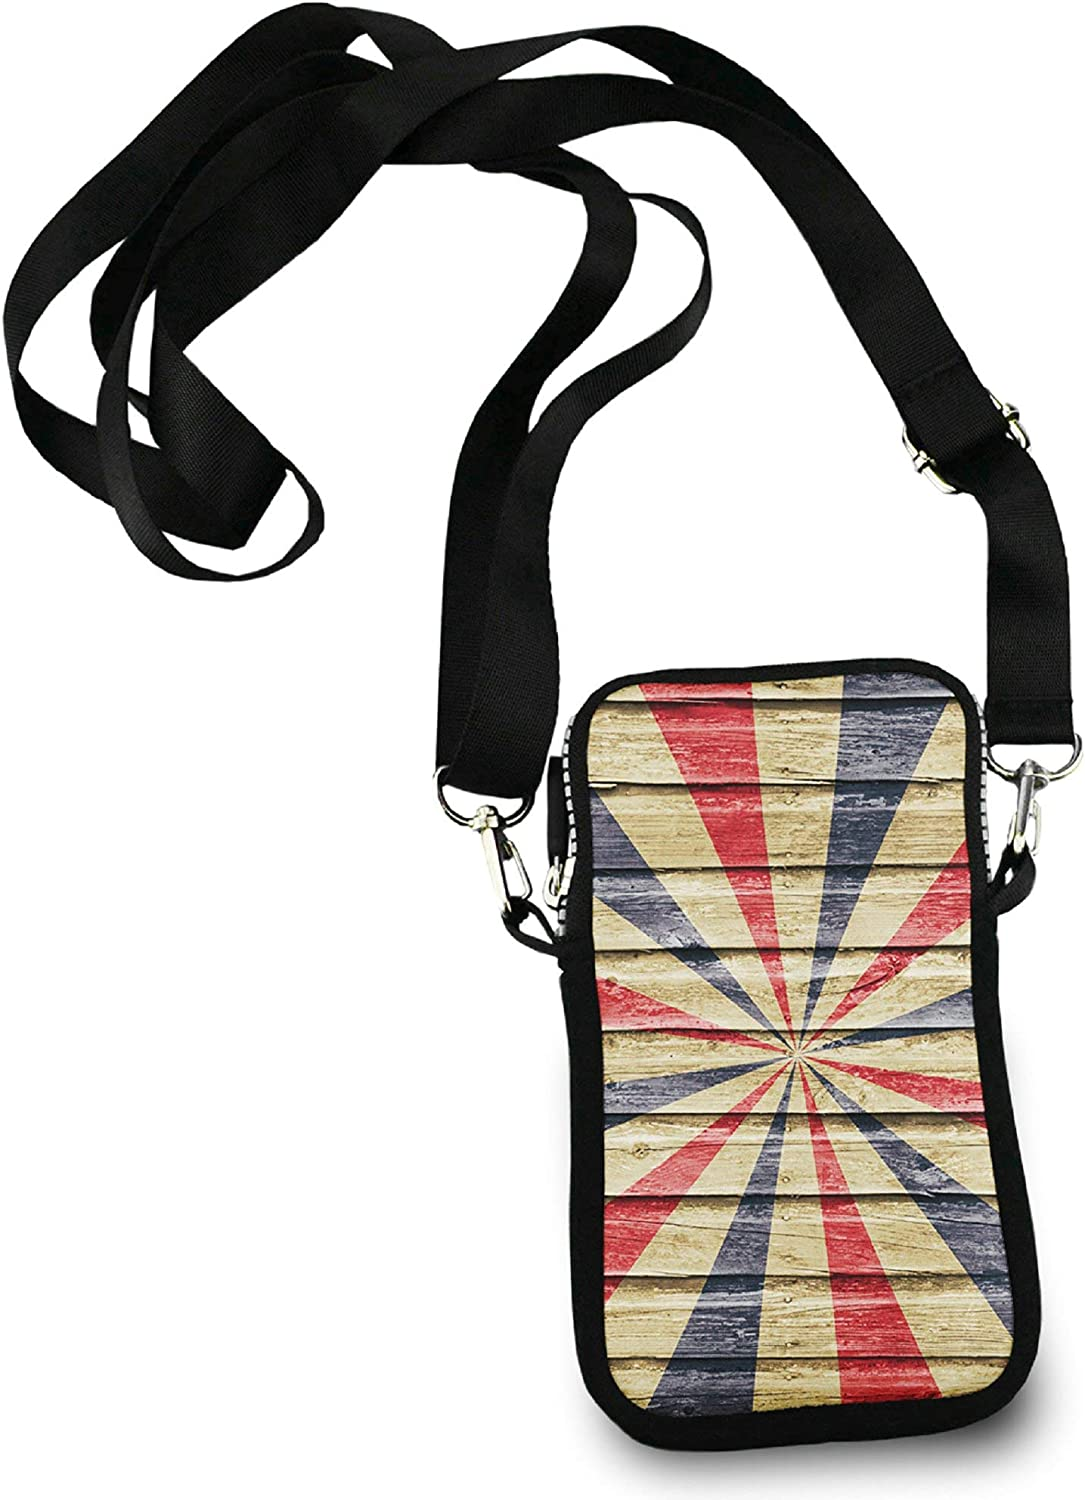 Casual Security Pack Crossbody Phone Pouch With Shoulder Strap Wallet Handbag tie dye